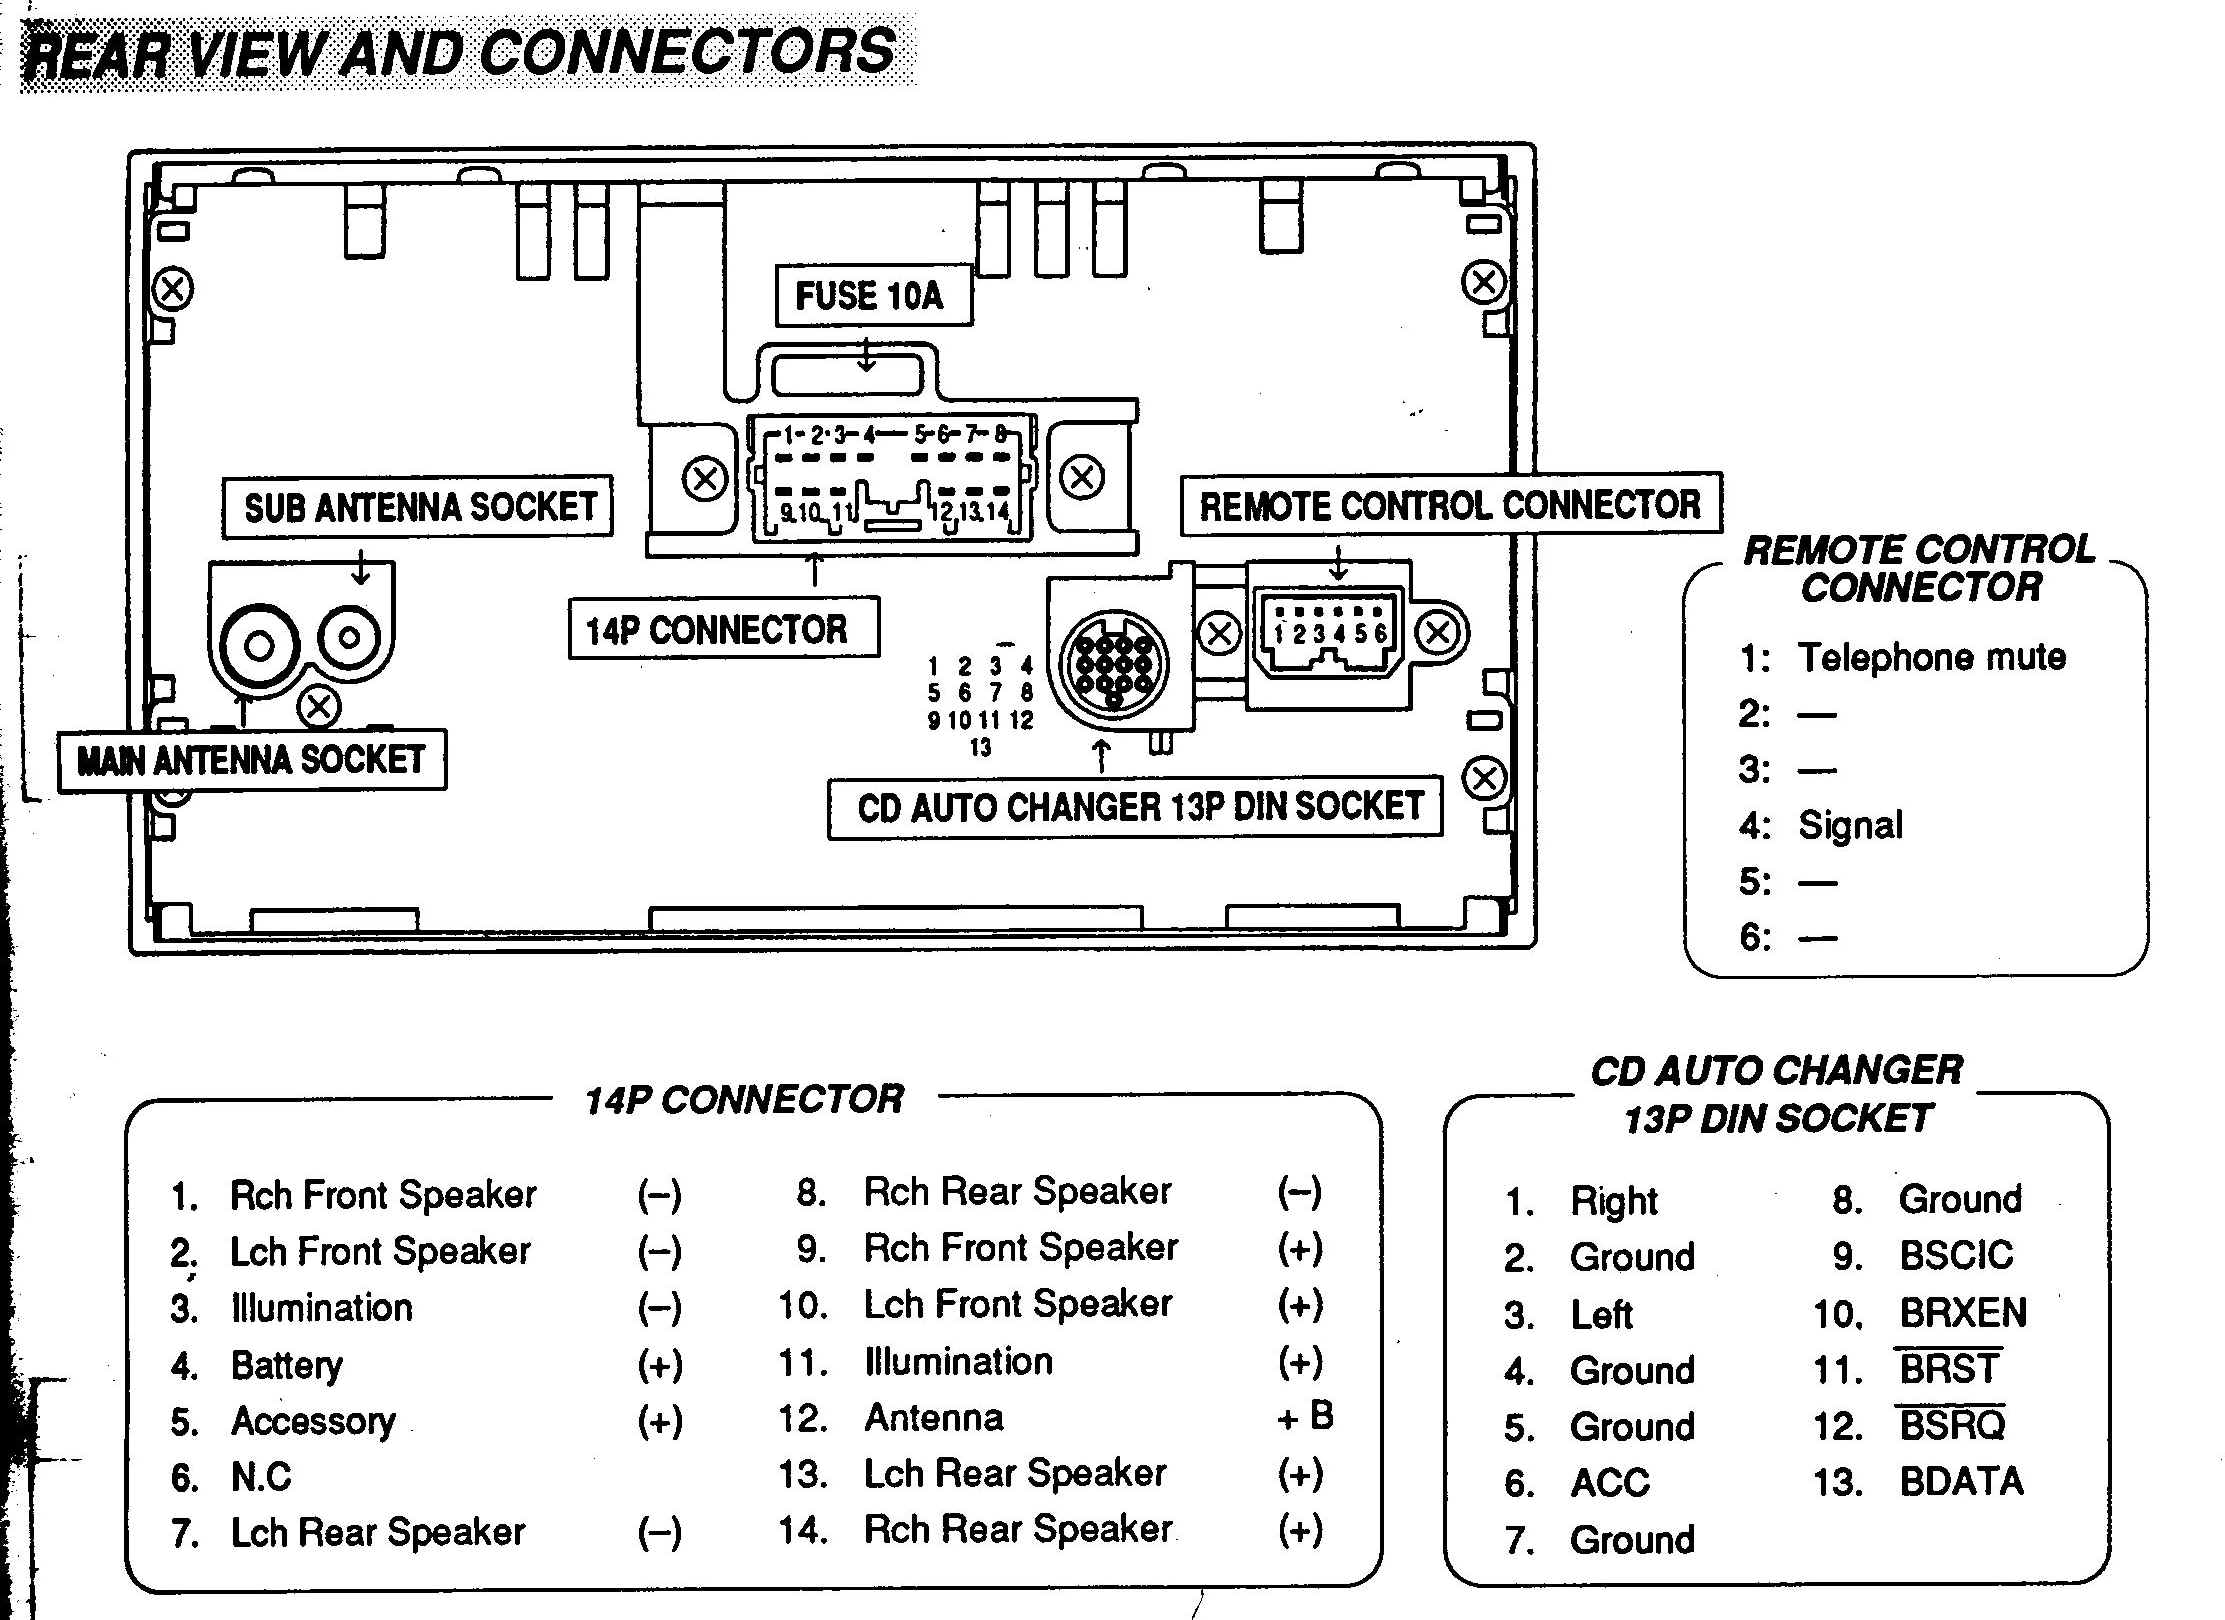 Ford Car Stereo Wiring Diagram Schematic Diagrams Radio Color Codes Factory Simple Schema